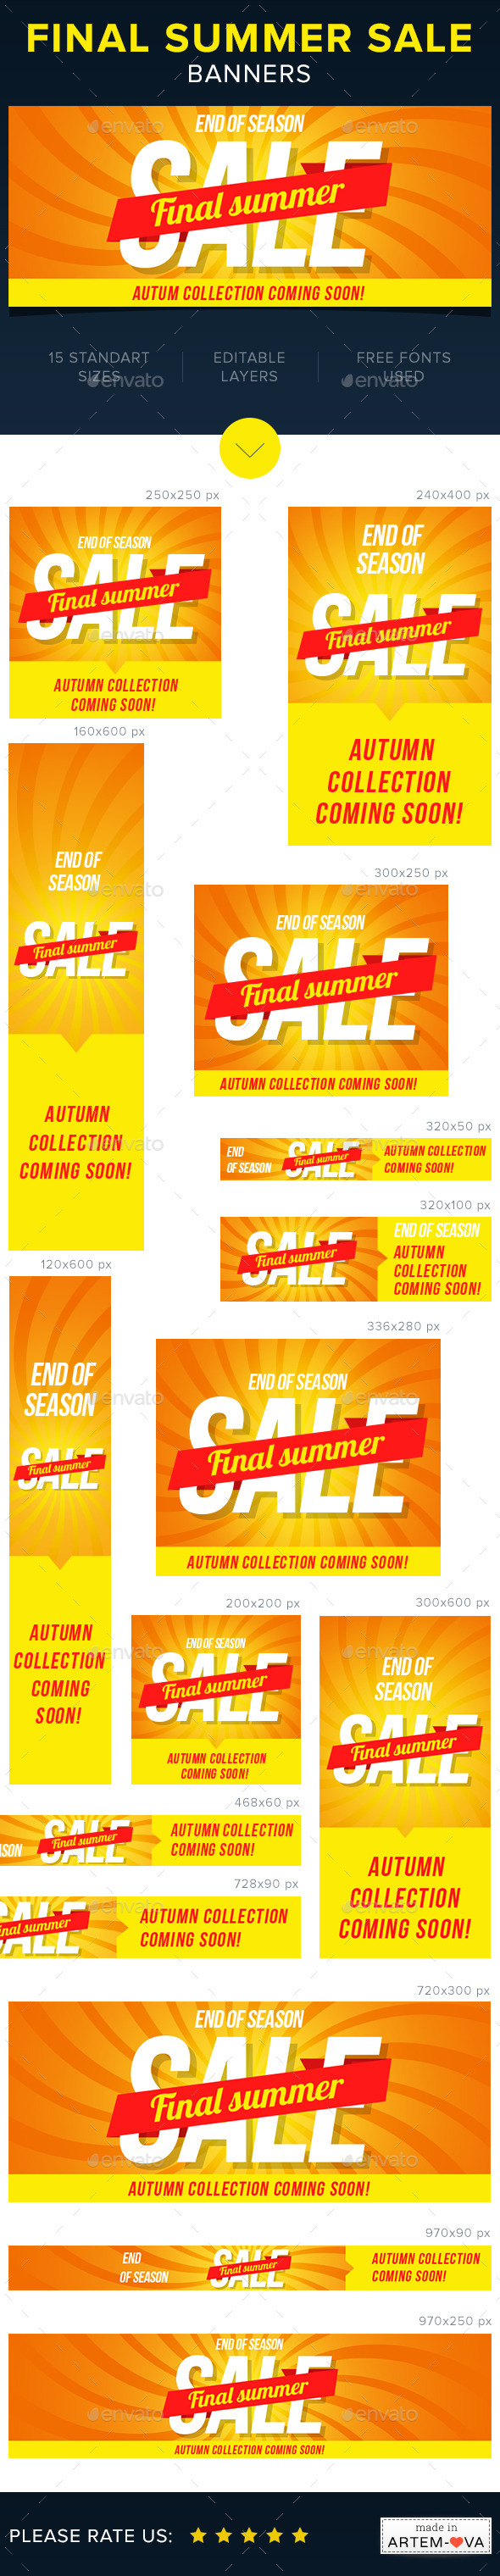 Final Summer Sale Banners - Banners & Ads Web Elements